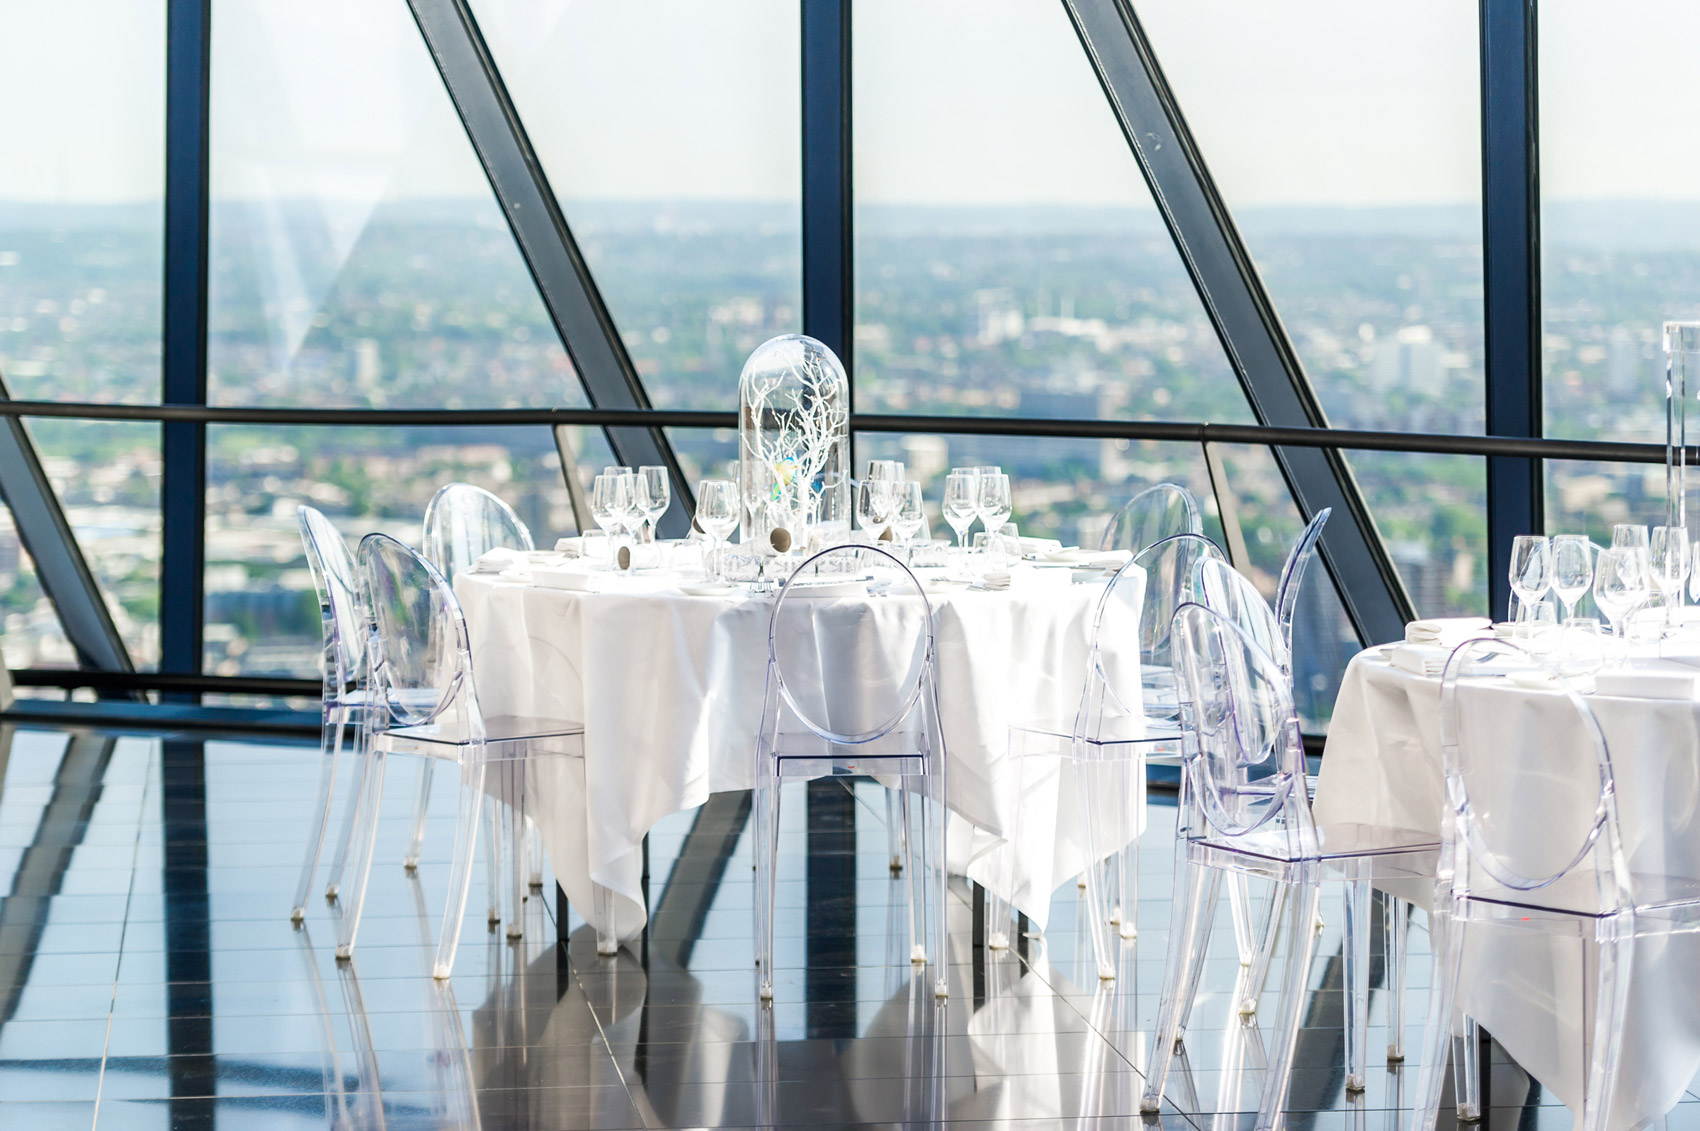 Searcys In The Sky With Diamonds' Adds Festive Sparkle To The City 7